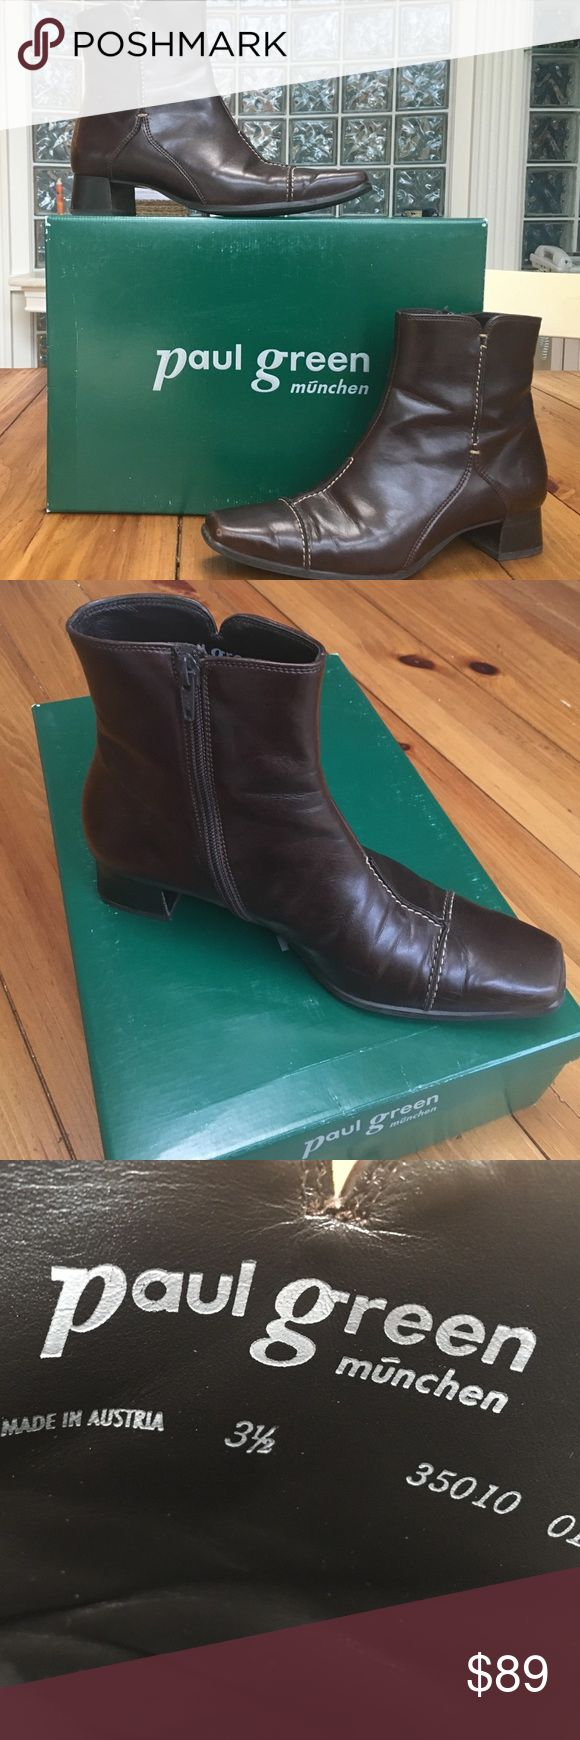 Paul Green Munchen Booties Rich chocolate brown leather ankle boots with top stitch detail. Side zip. Very comfortable! Top quality and style! Very good pre-owned condition. US size 6. PRICE DROP! Paul Green Shoes Ankle Boots & Booties